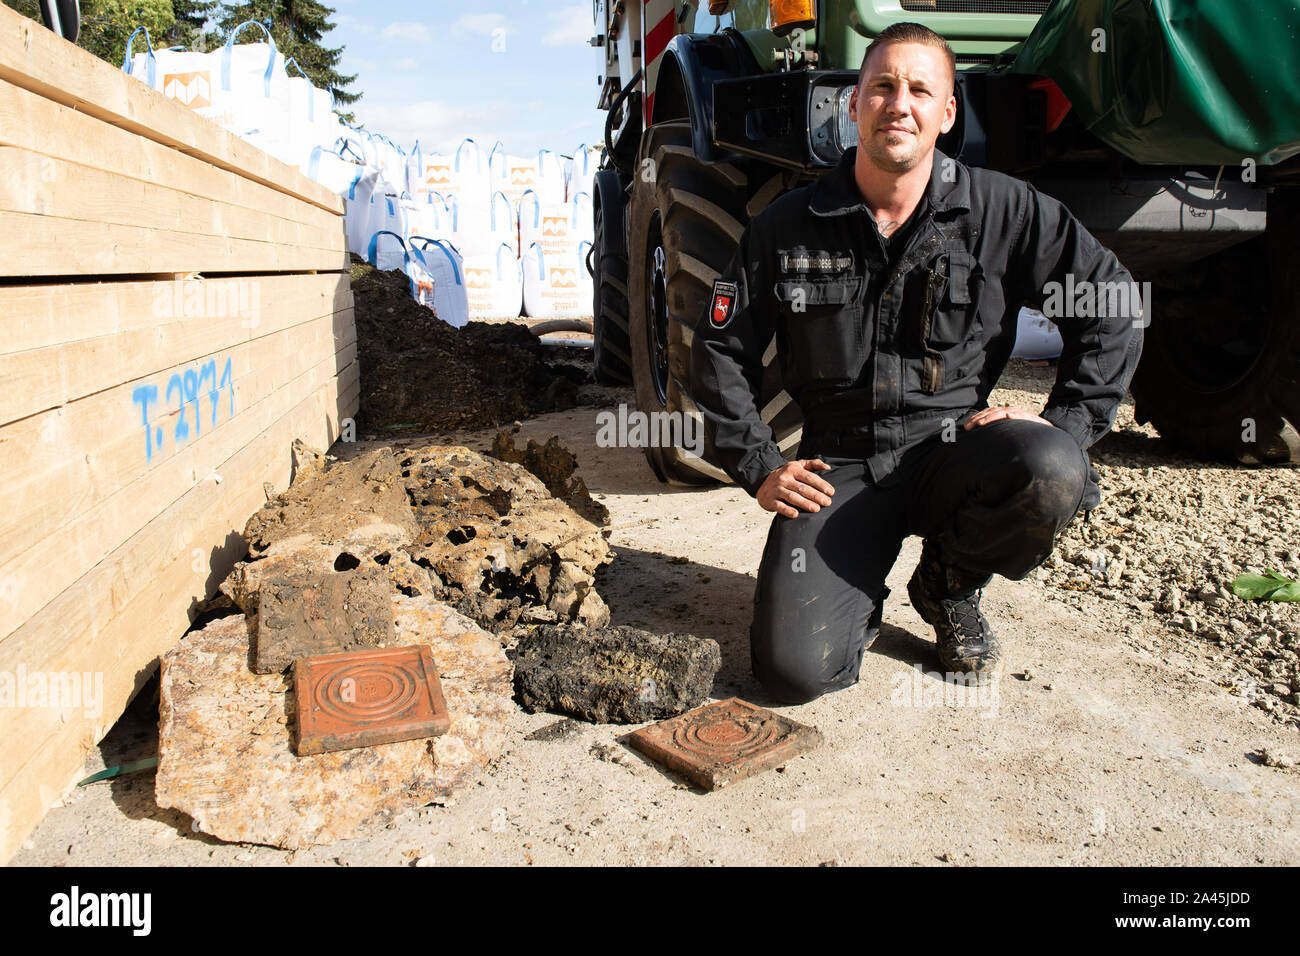 12 October 2019, Lower Saxony, Göttingen: Thorsten Lüdeke, demolition engineer of the Lower Saxony Explosive Ordnance Removal Service, sits next to remains of metal drums, slag and clay bricks found on a heap in the ground and originally suspected of being a world war bomb. In the morning about 14,000 people were evacuated around the site. Photo: Swen Pförtner/dpa Stock Photo